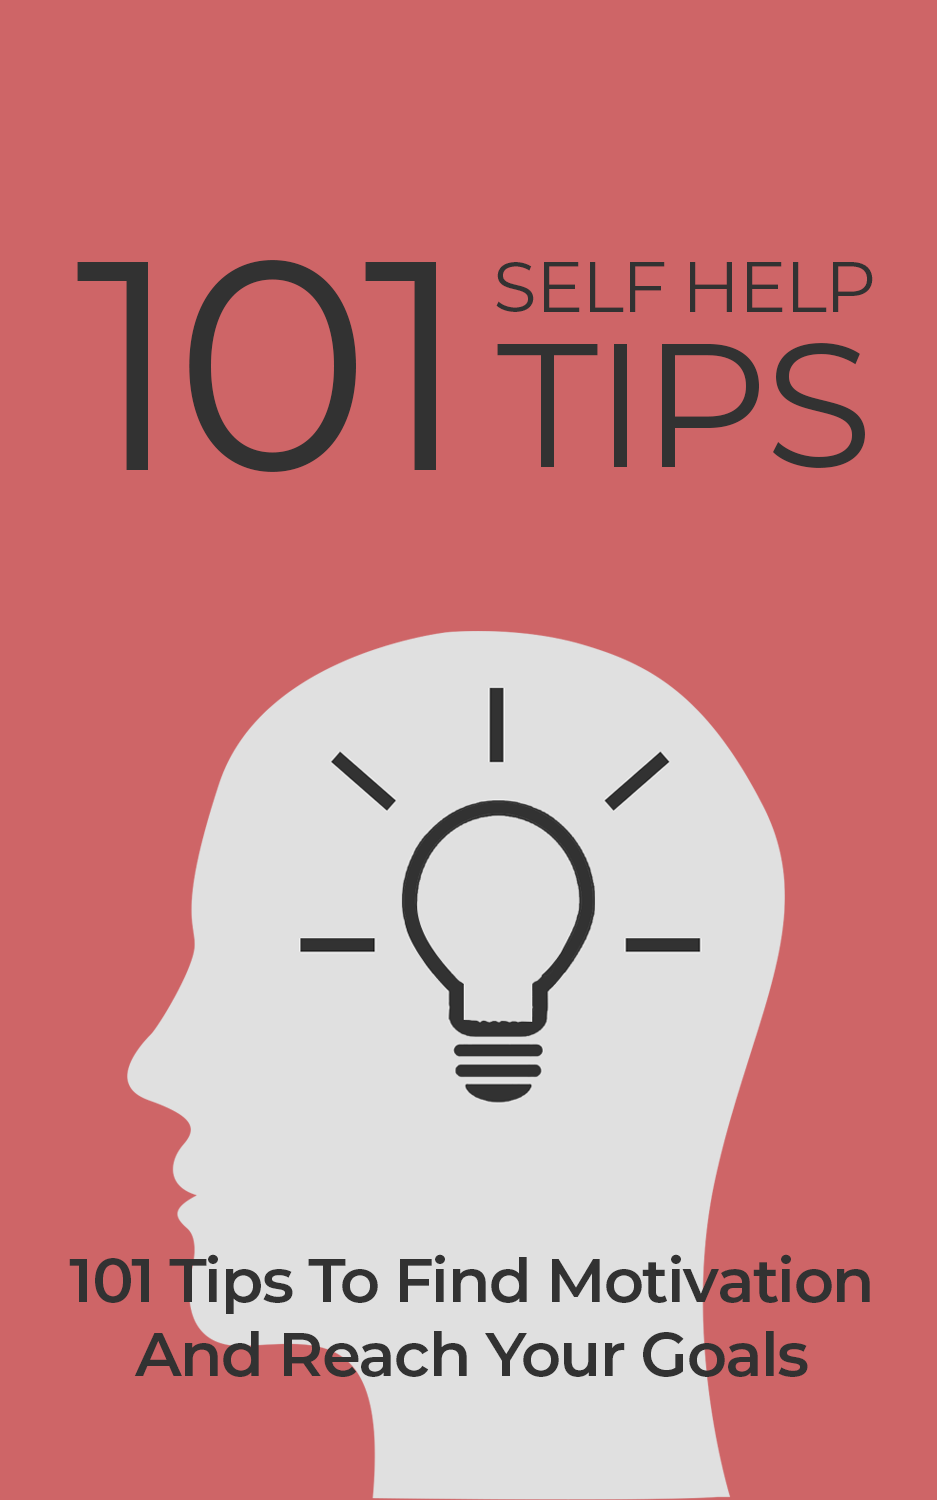 101 Self Help Tips (101 Tips To Find Motivation And Reach Your Goals) Ebook's Book Image